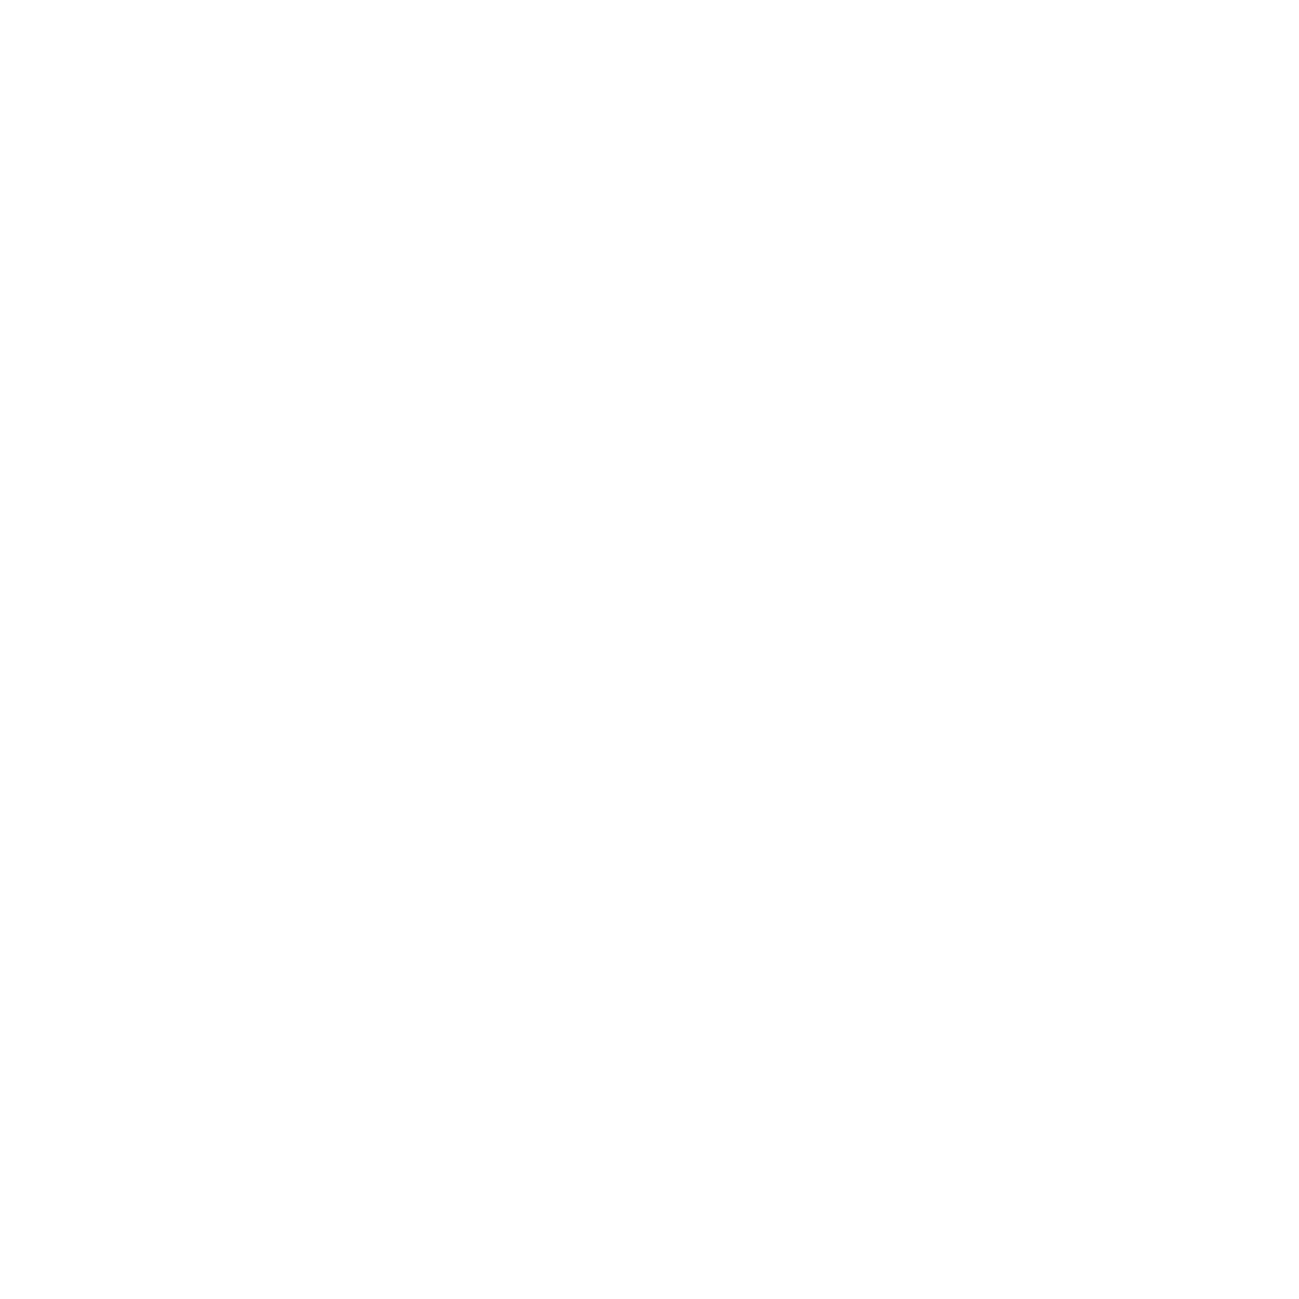 Lines-white-01.png